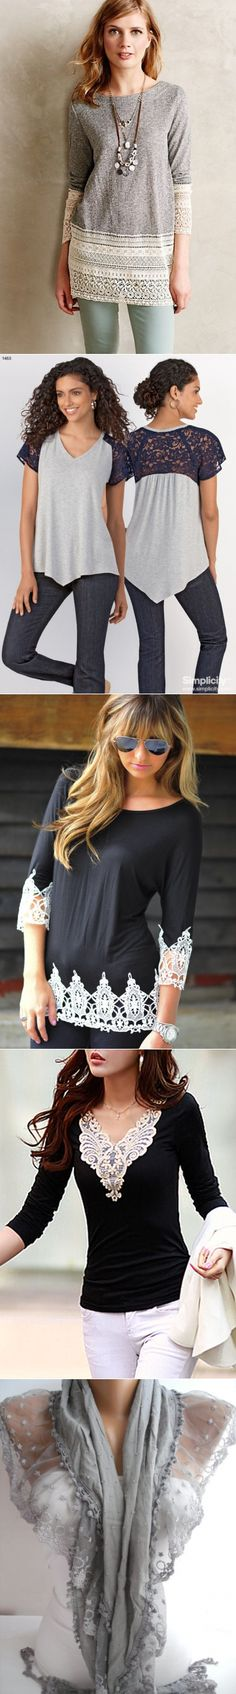 lace blouse shirt change...♥ Deniz ♥